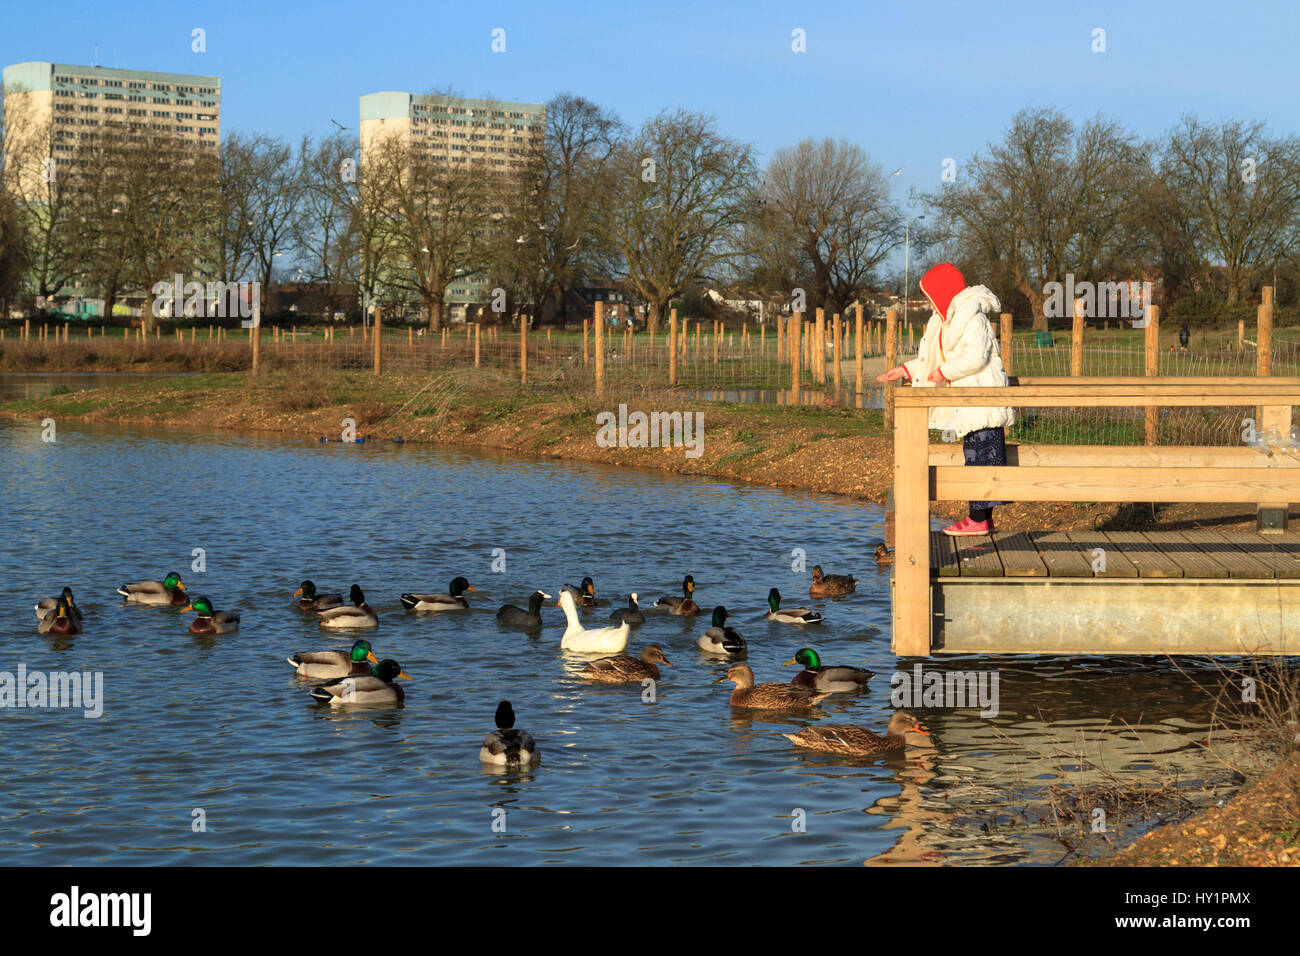 Young girl feeding ducks at a pond, Lakehouse park, wanstead flats, forest gate, london, uk Stock Photo